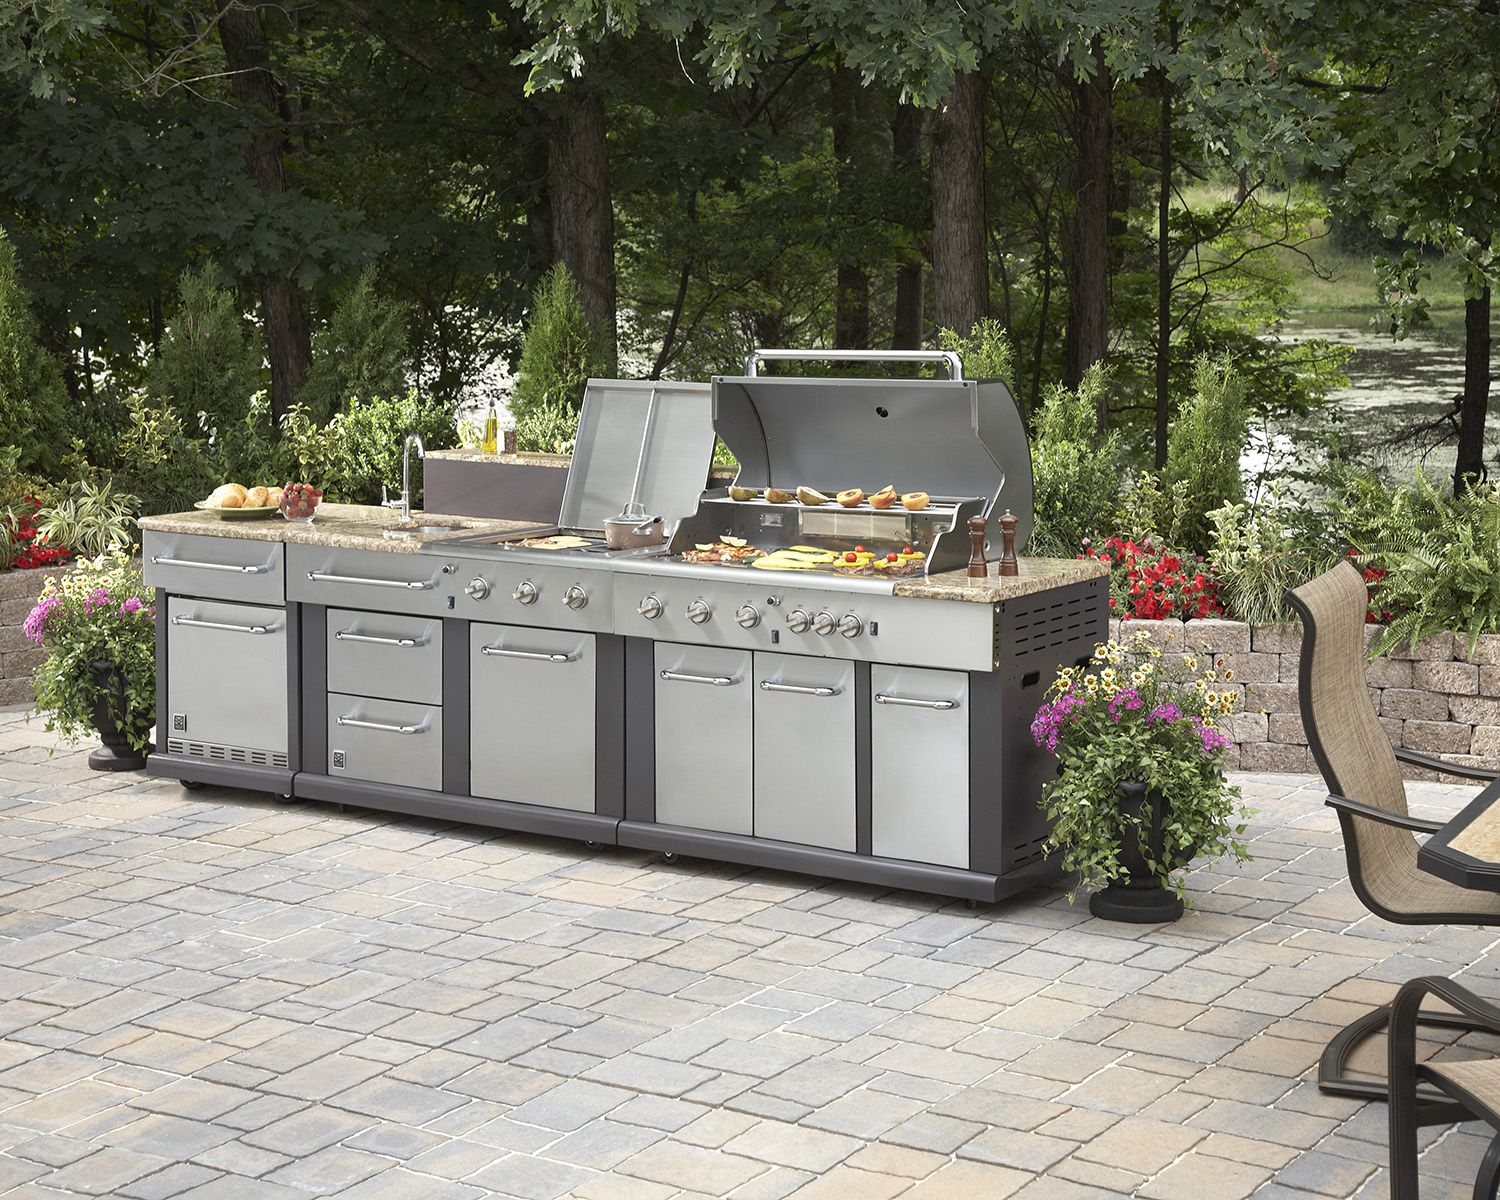 Take Outdoor Cooking To A Whole New Level With This Stunning Ensemble Modular Outdoor Kitchens Outdoor Kitchen Outdoor Kitchen Appliances